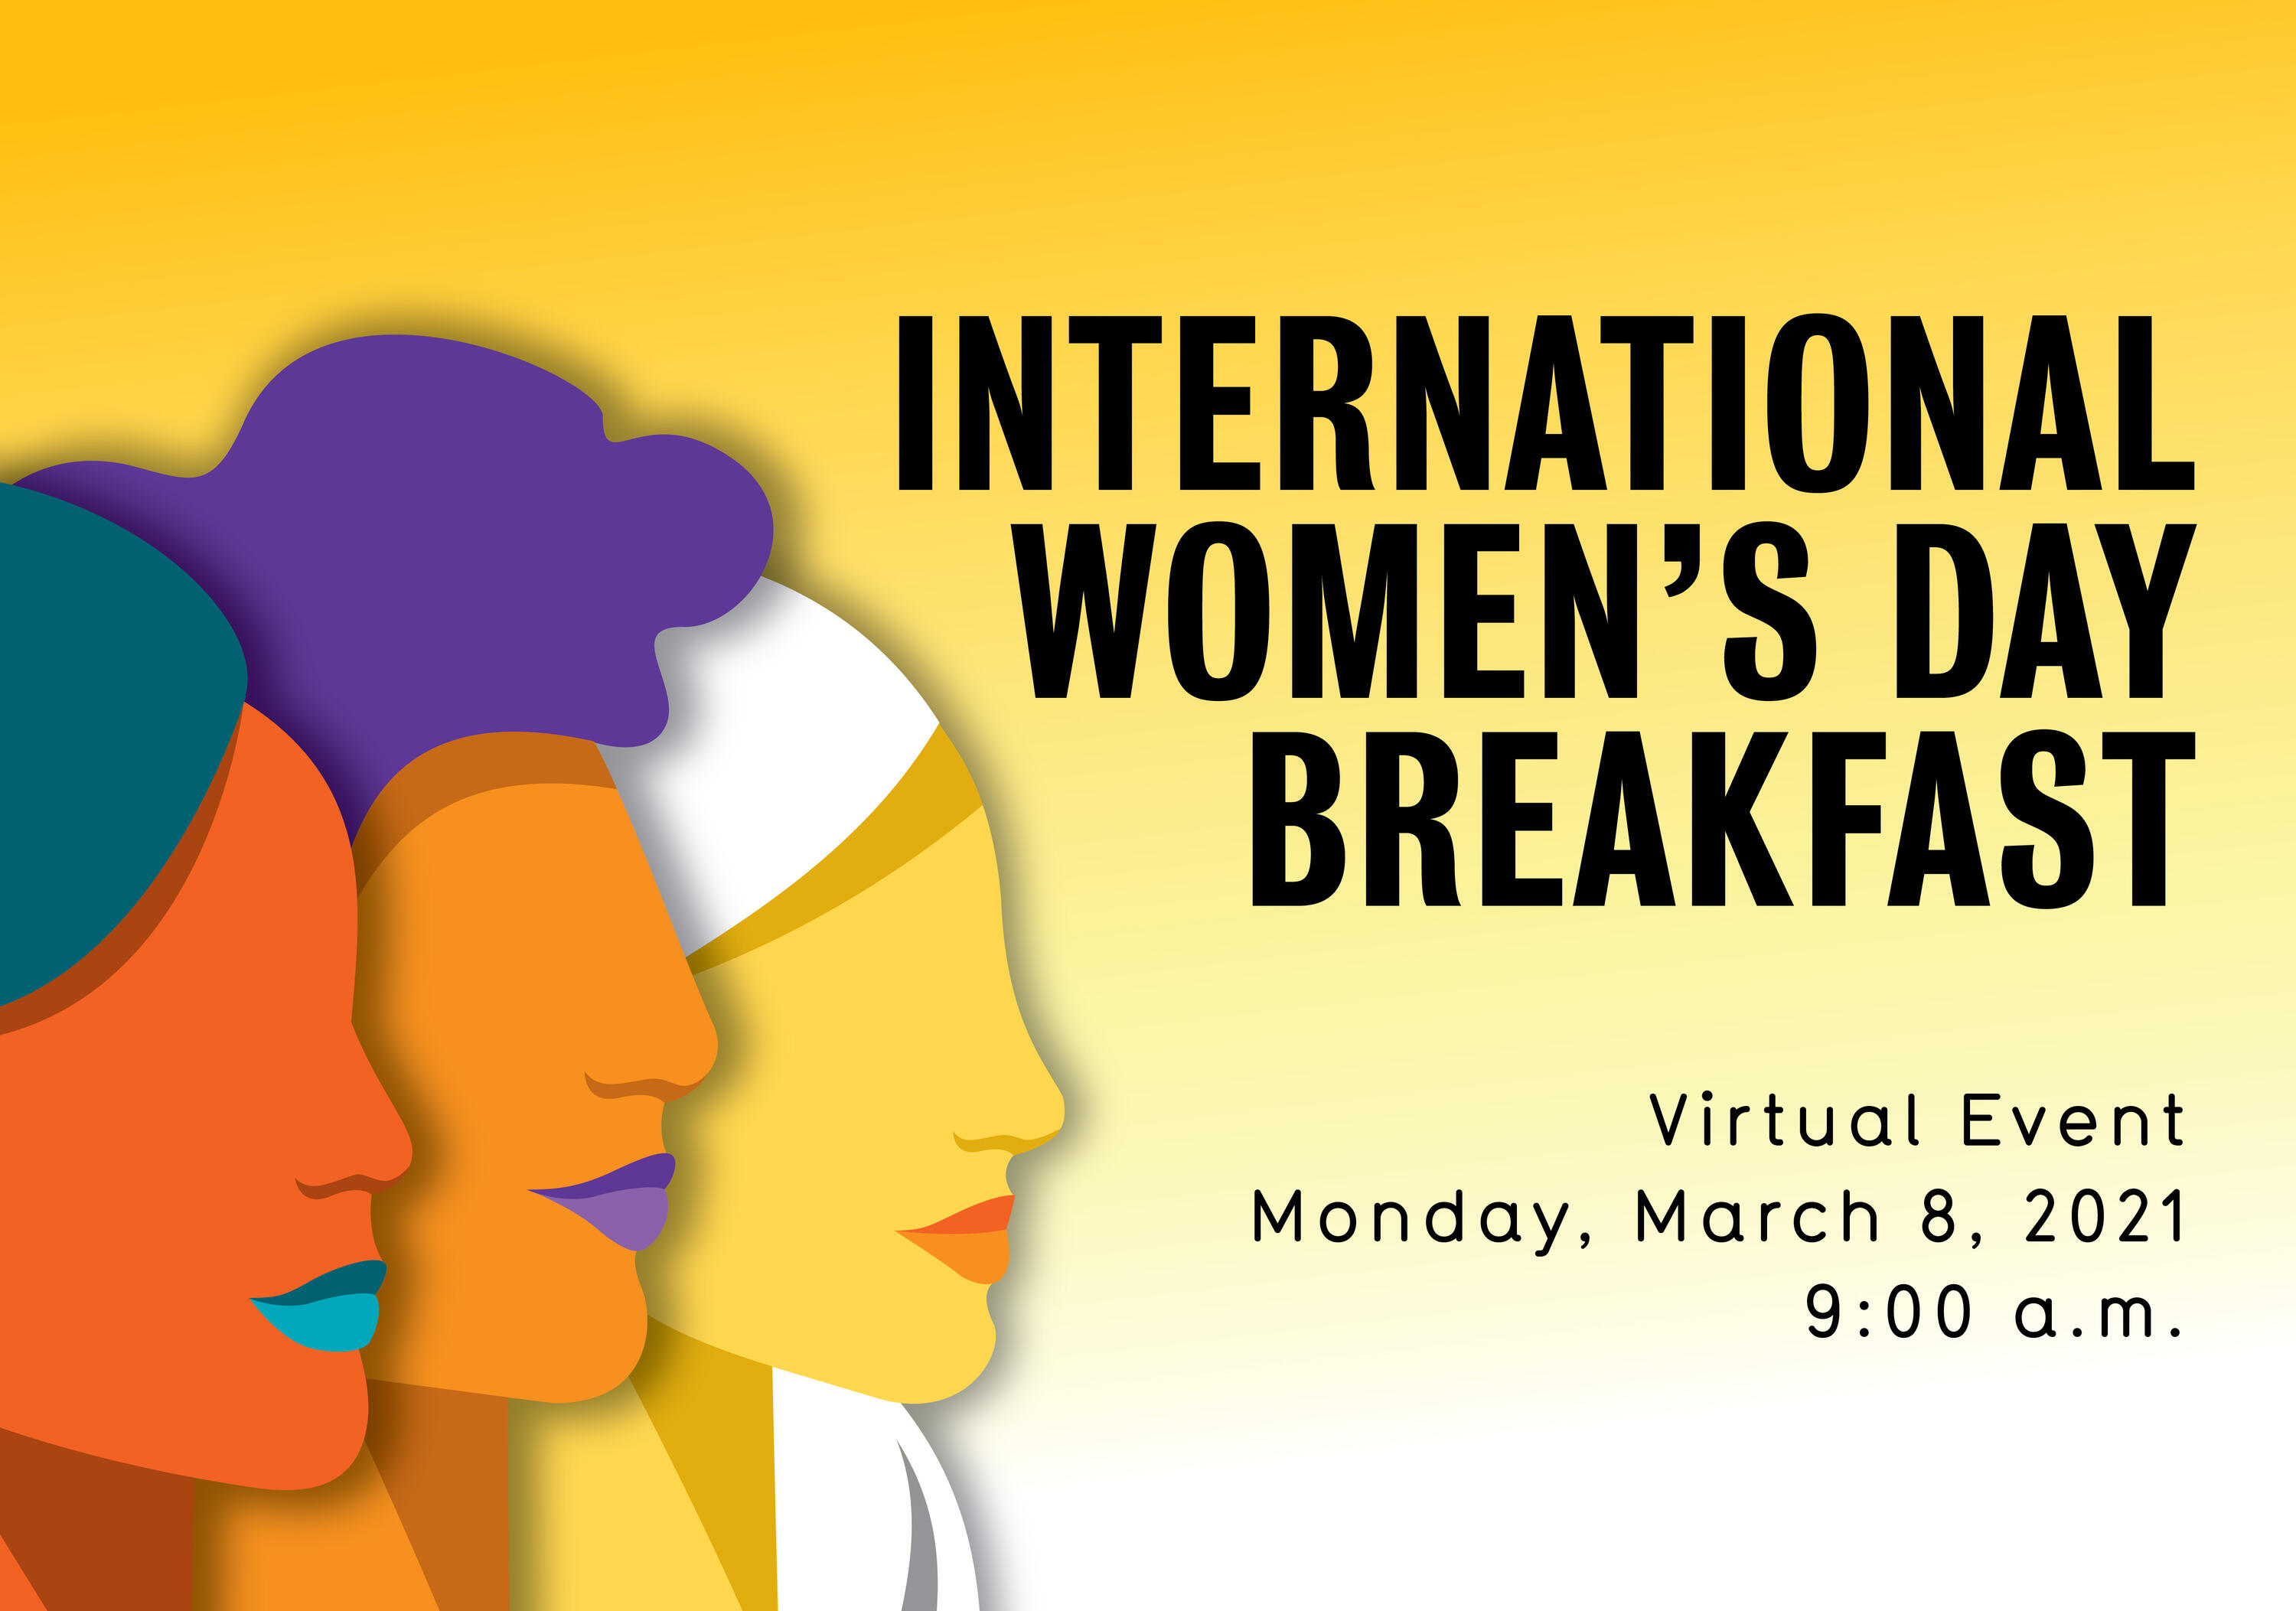 international women's day banner 3 female faces beside each other